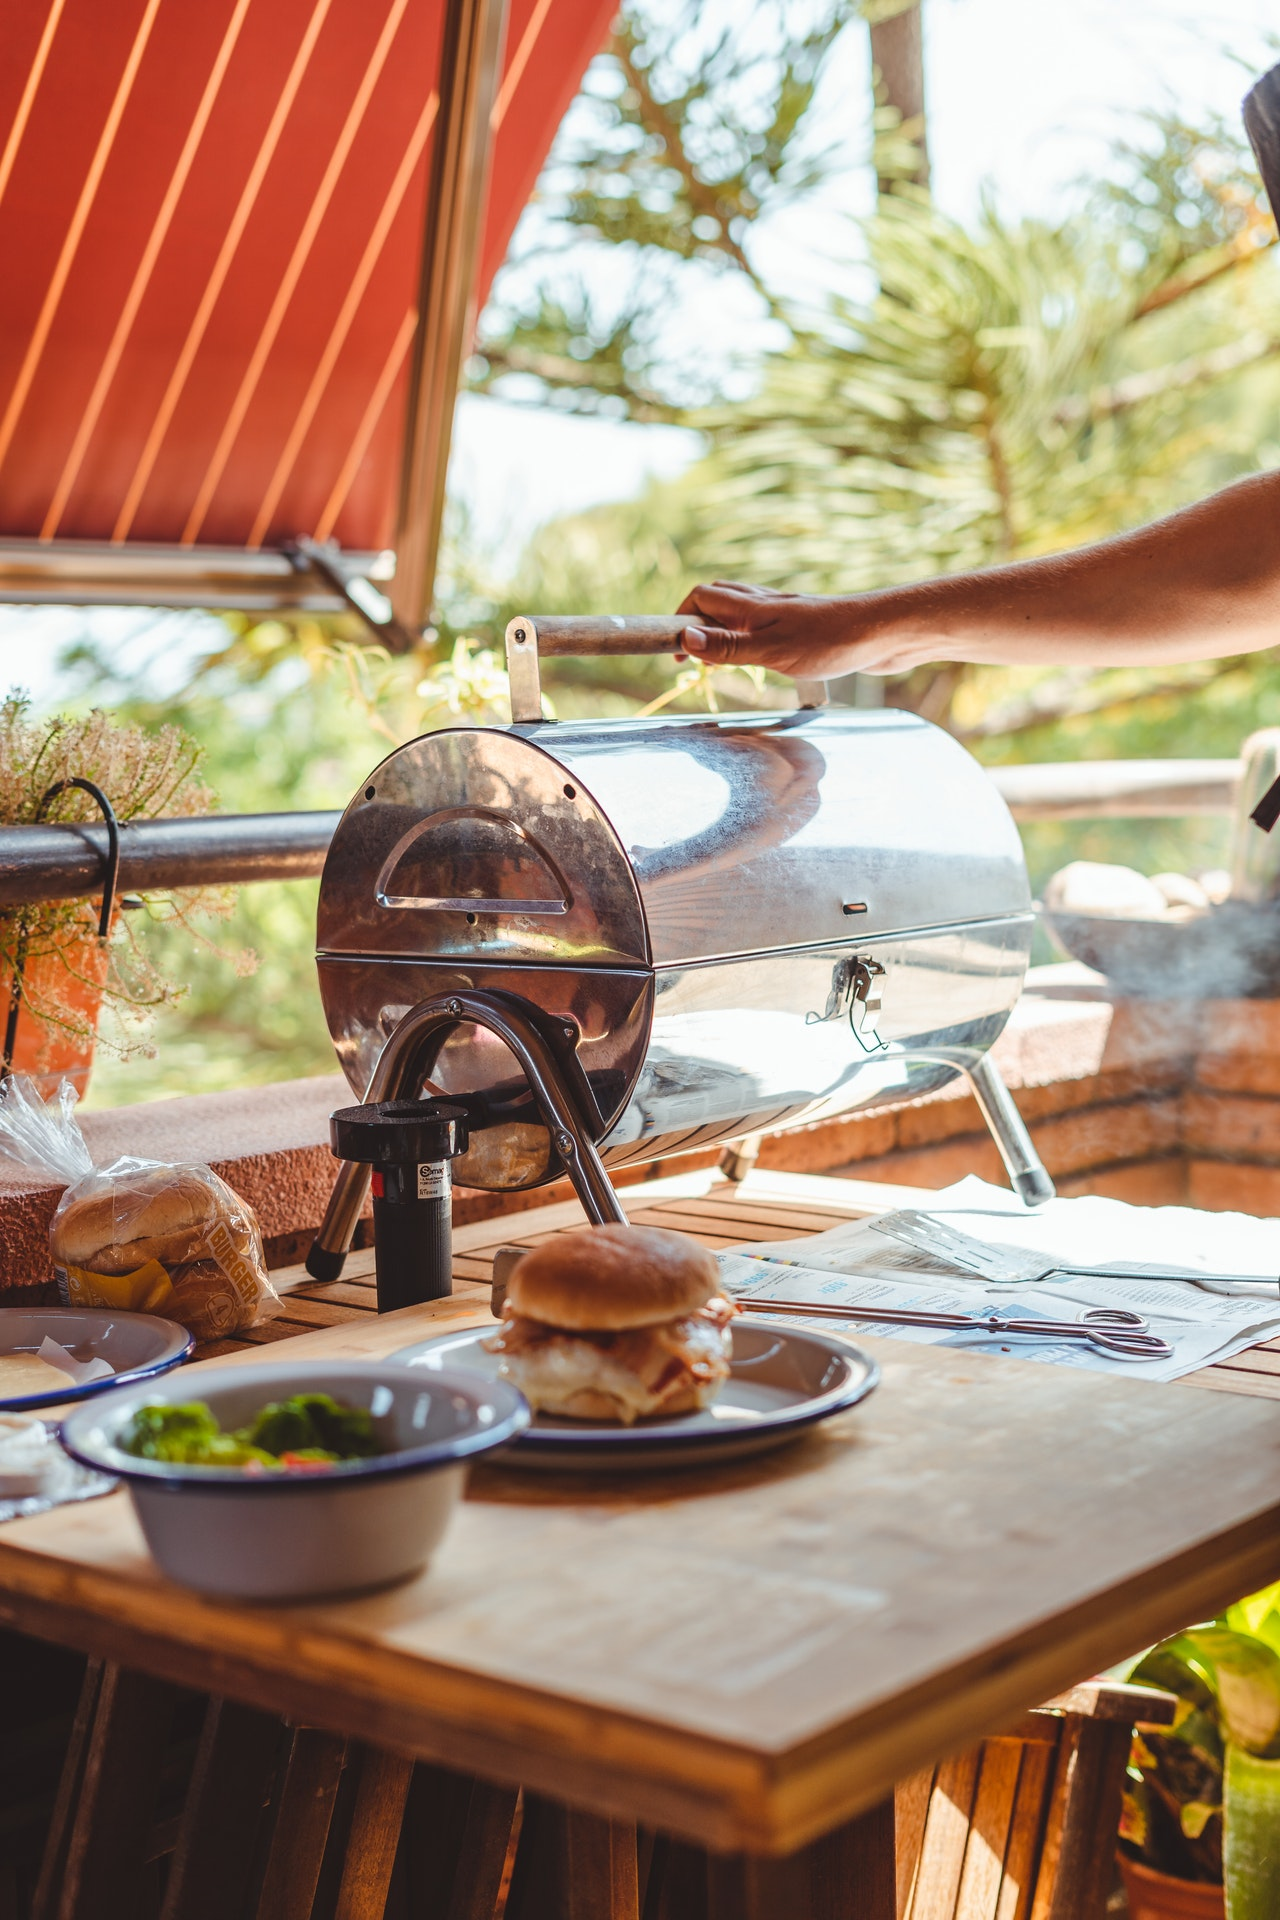 Three ways that Bedsure blankets can make your BBQ more comfortable